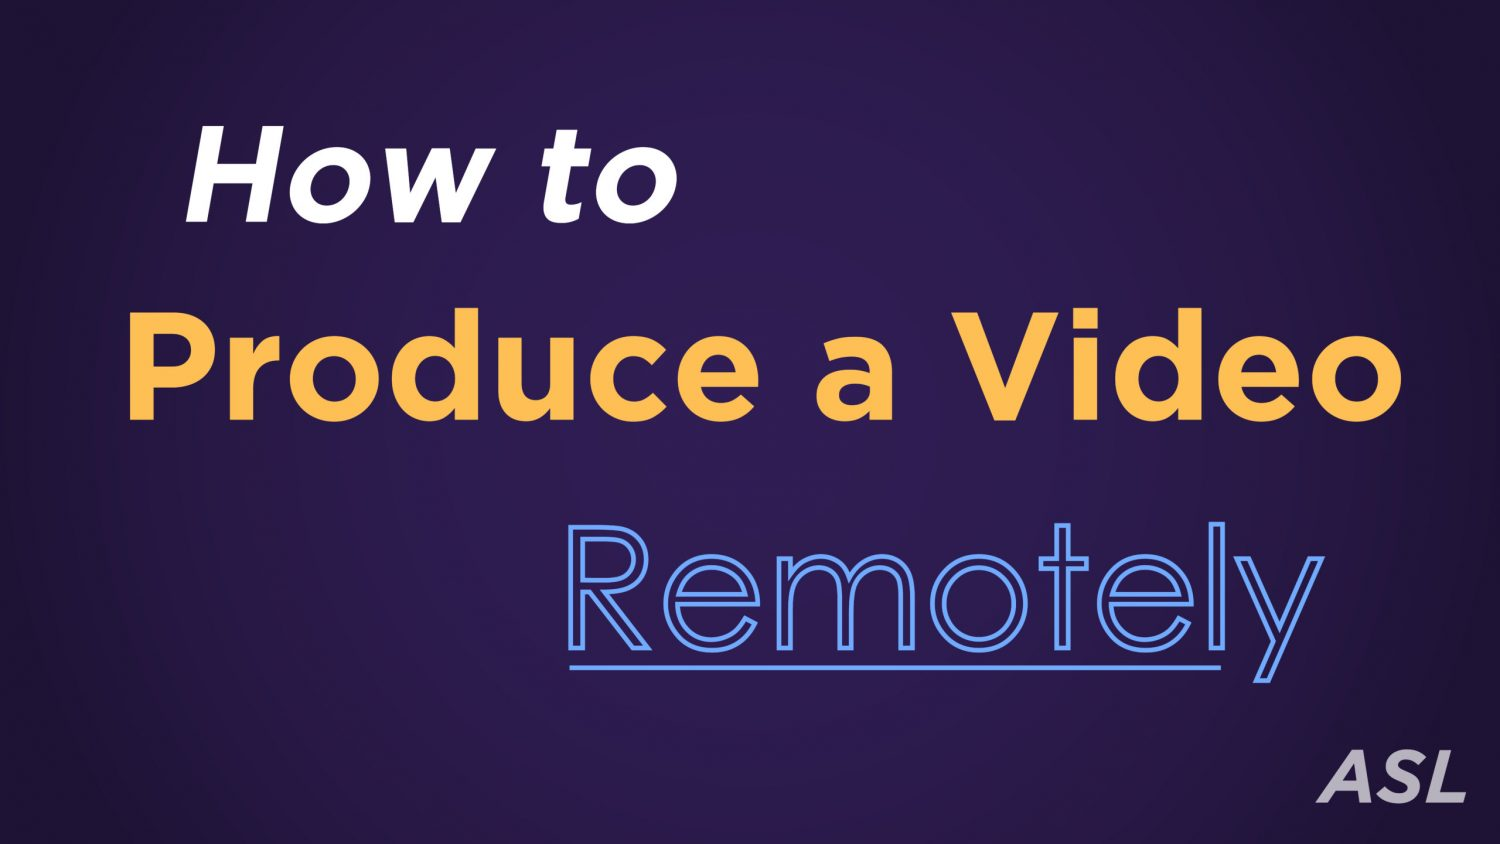 HOW TO REMOTELY PRODUCE A VIDEO